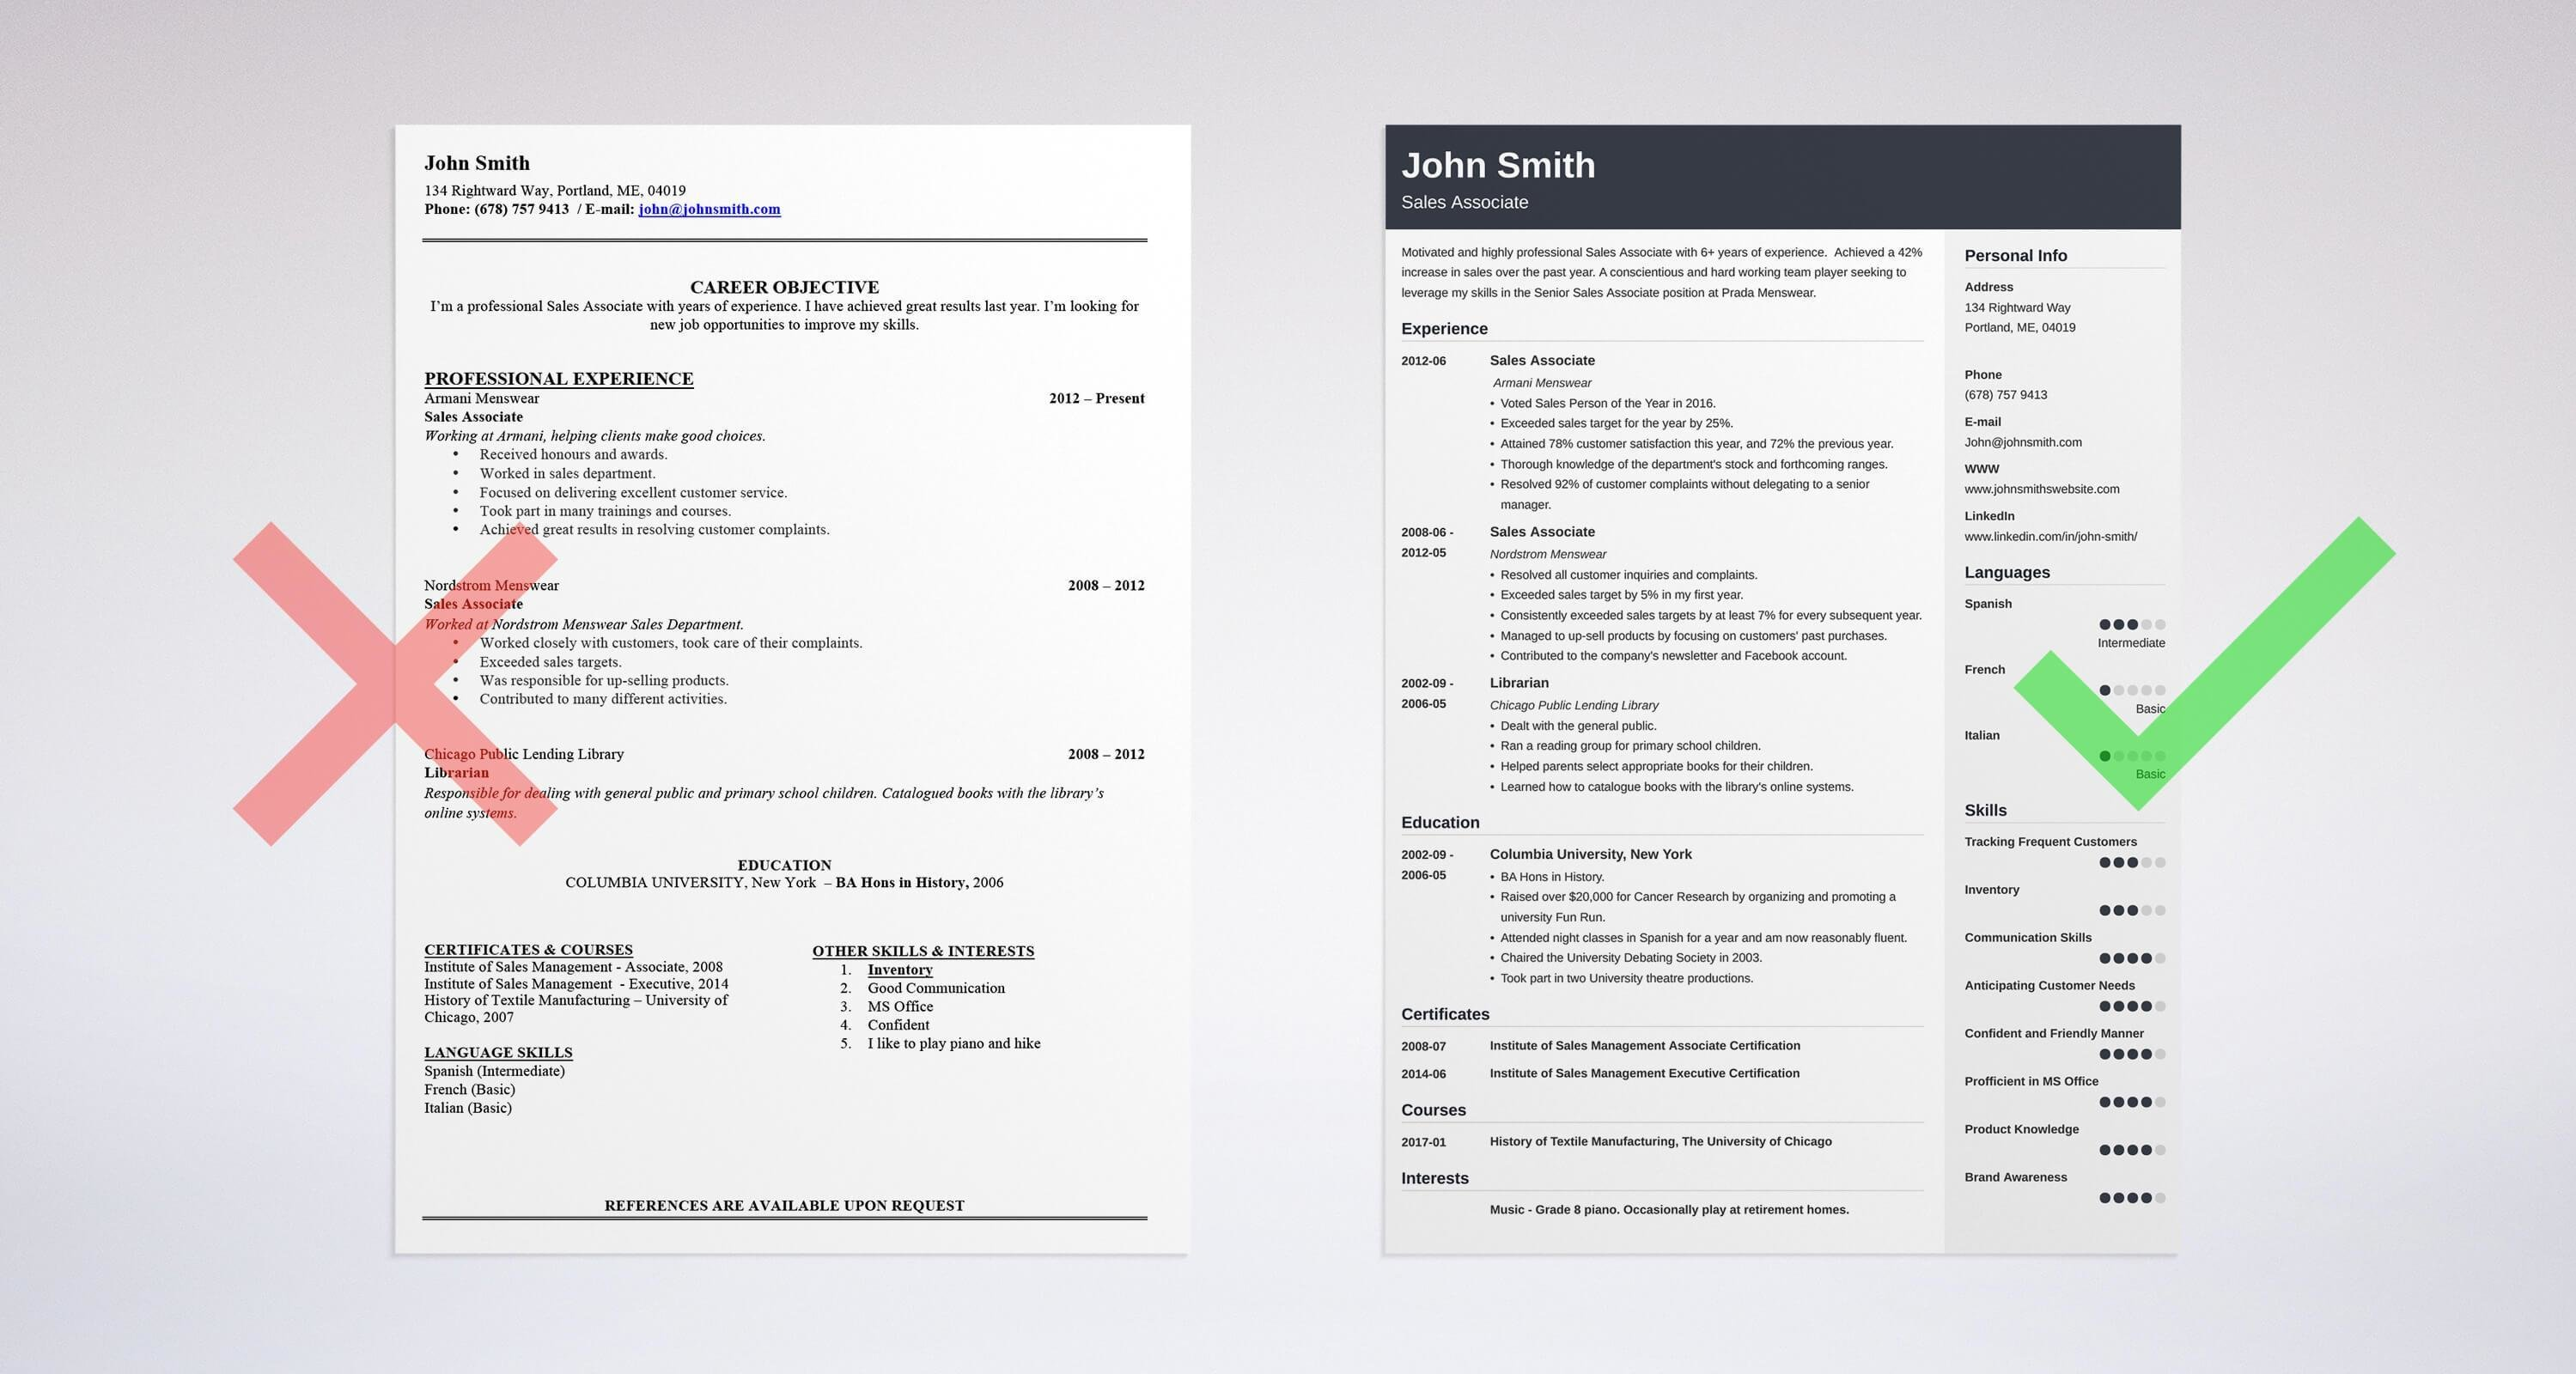 resume summary no zoom - How To Write A Resume Experience